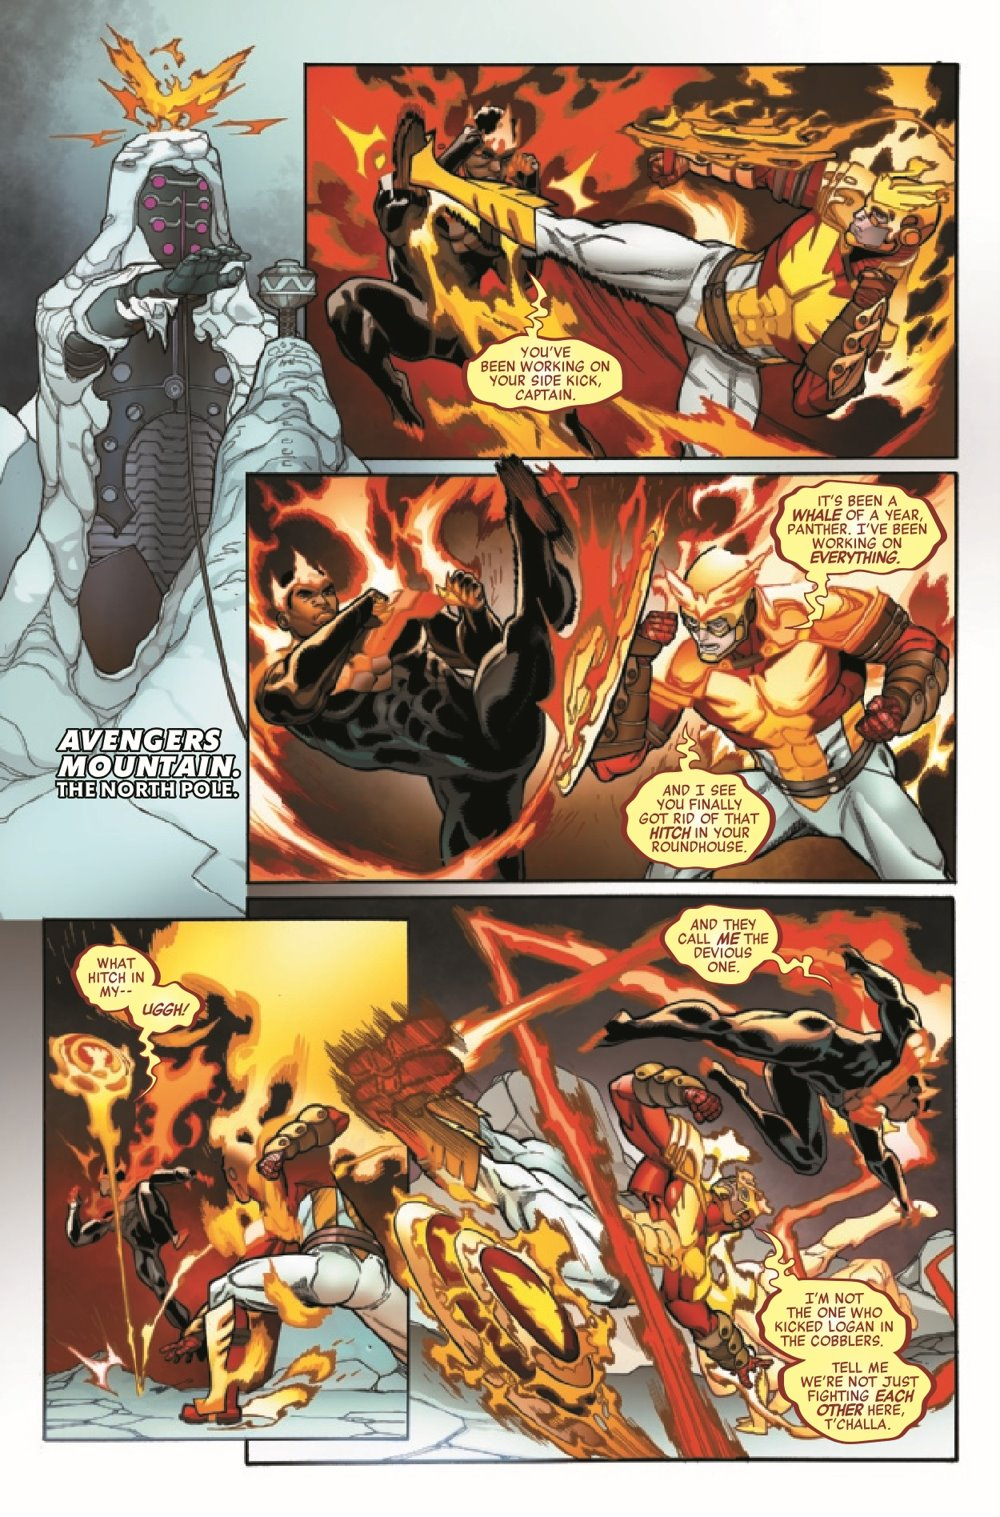 AVEN2018044_Preview-3 ComicList Previews: THE AVENGERS #44